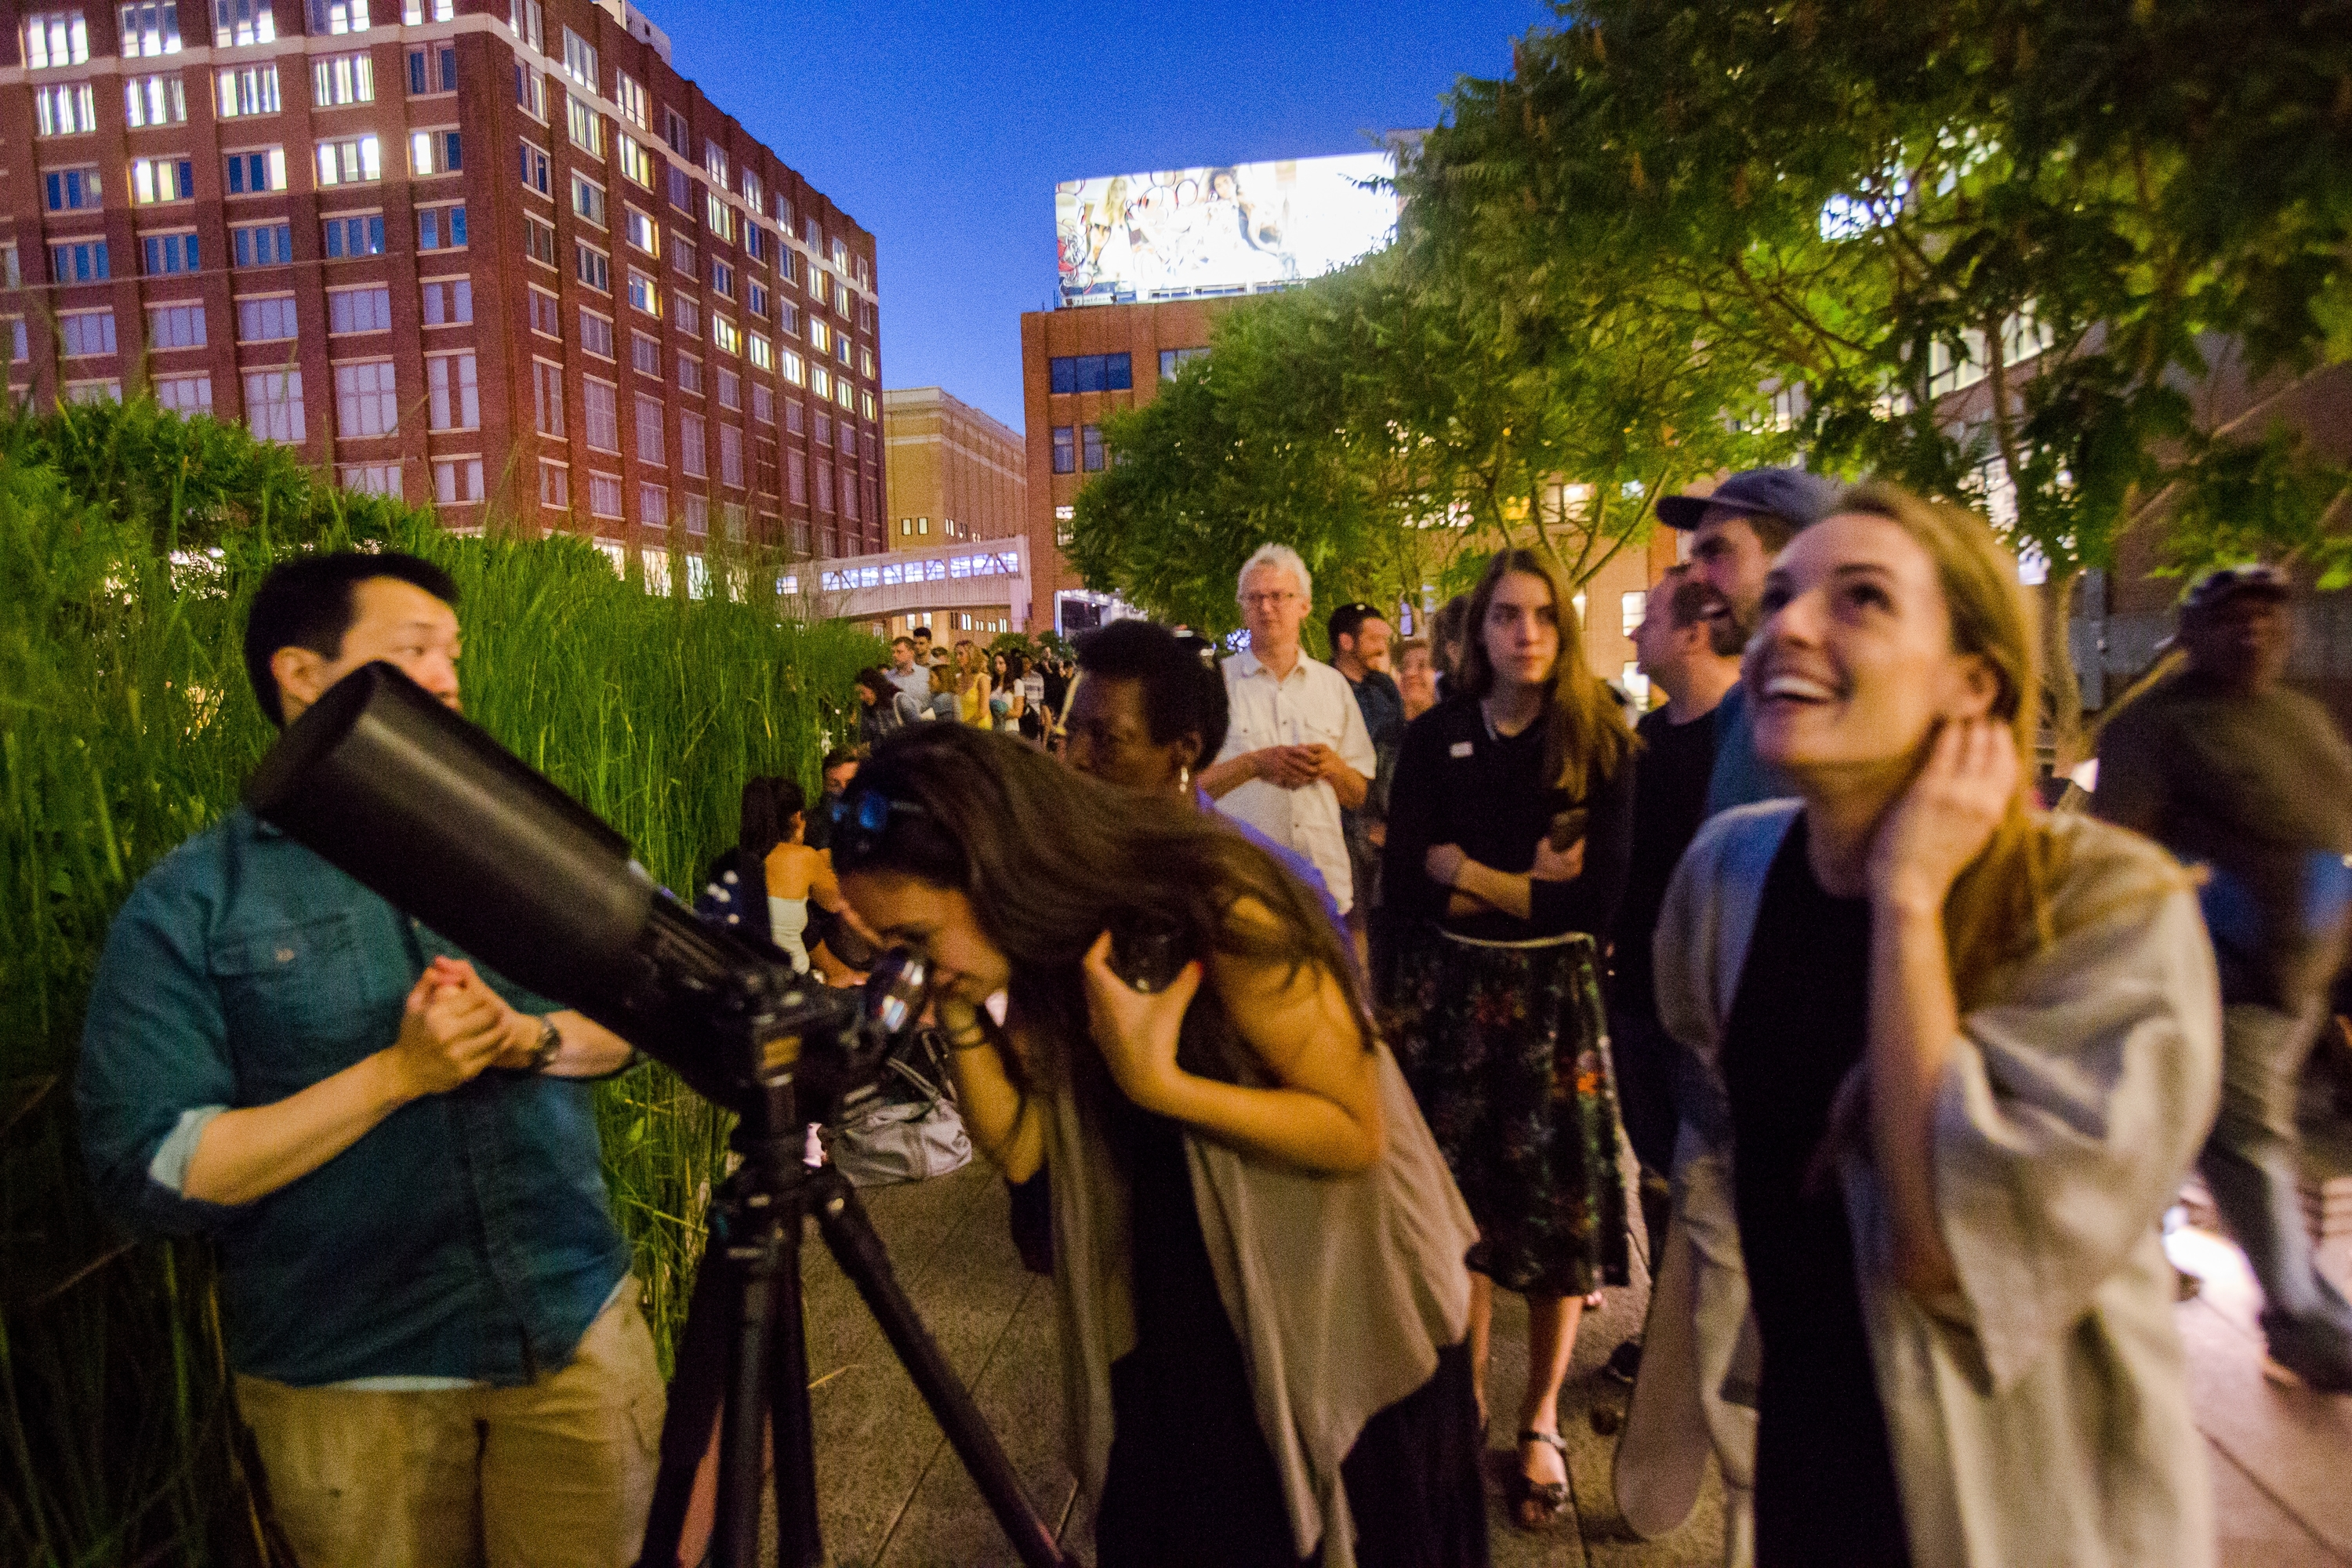 Go stargazing on the High Line this summer